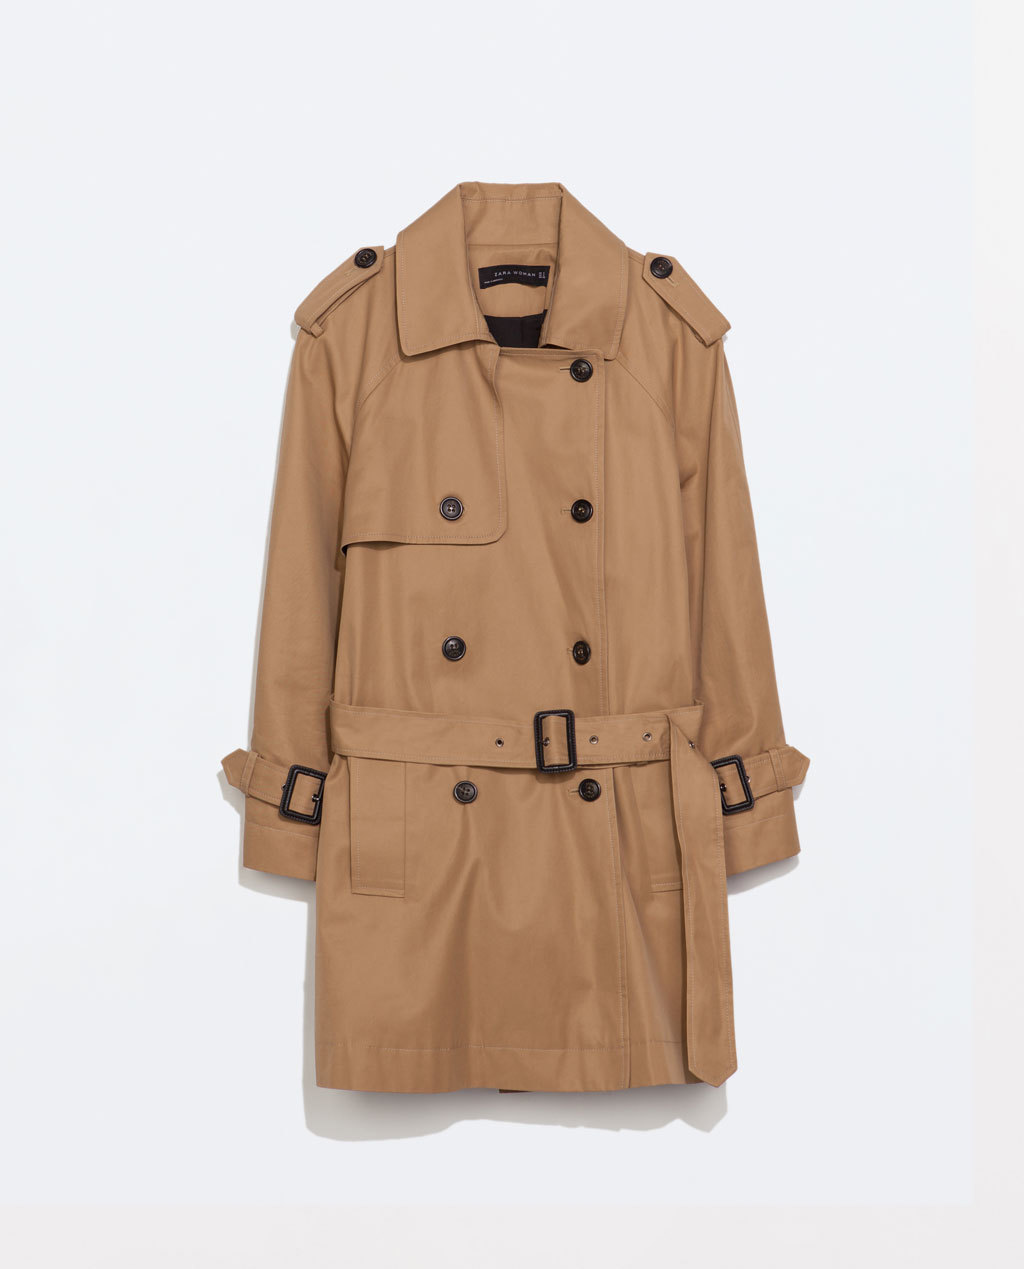 Short Trench Coat - pattern: plain; length: below the bottom; shoulder detail: obvious epaulette; style: trench coat; collar: standard lapel/rever collar; predominant colour: camel; occasions: casual, work, creative work; fit: straight cut (boxy); fibres: cotton - 100%; waist detail: belted waist/tie at waist/drawstring; sleeve length: long sleeve; sleeve style: standard; texture group: technical outdoor fabrics; collar break: medium; pattern type: fabric; season: s/s 2014